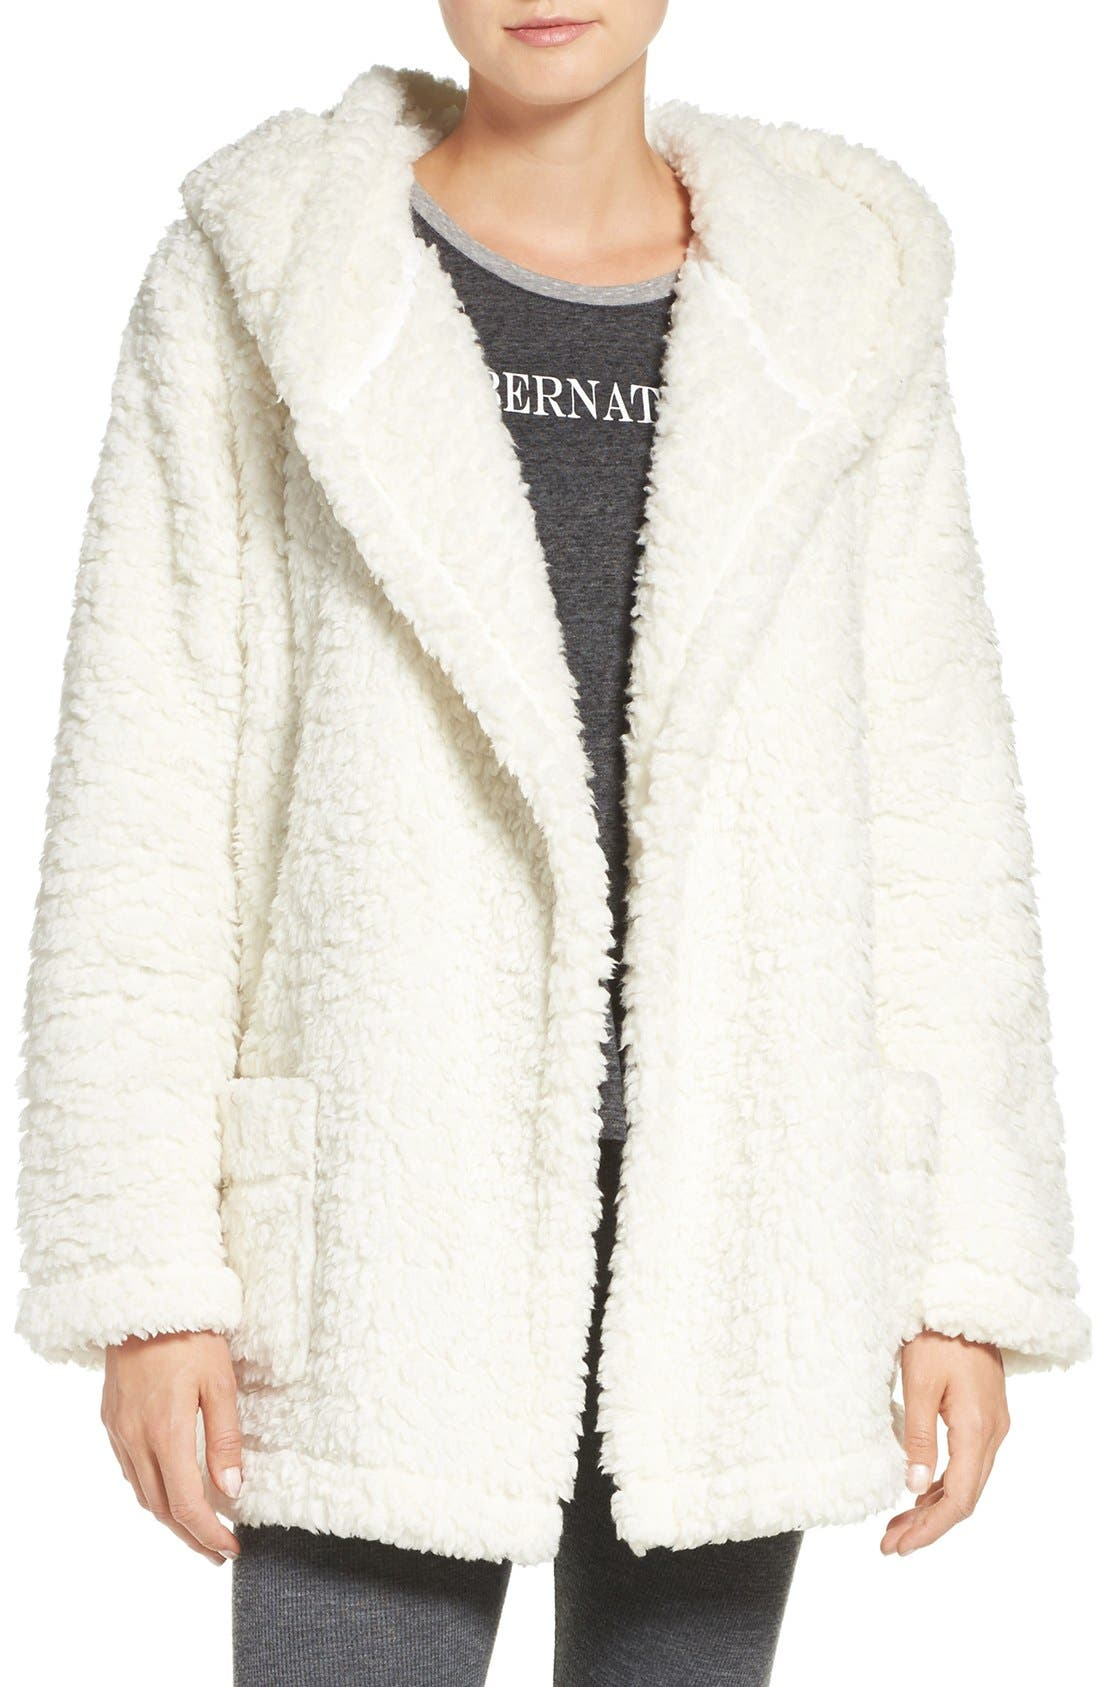 Alternate Image 1 Selected - Make + Model 'Oh So Cozy' Hooded Cardigan